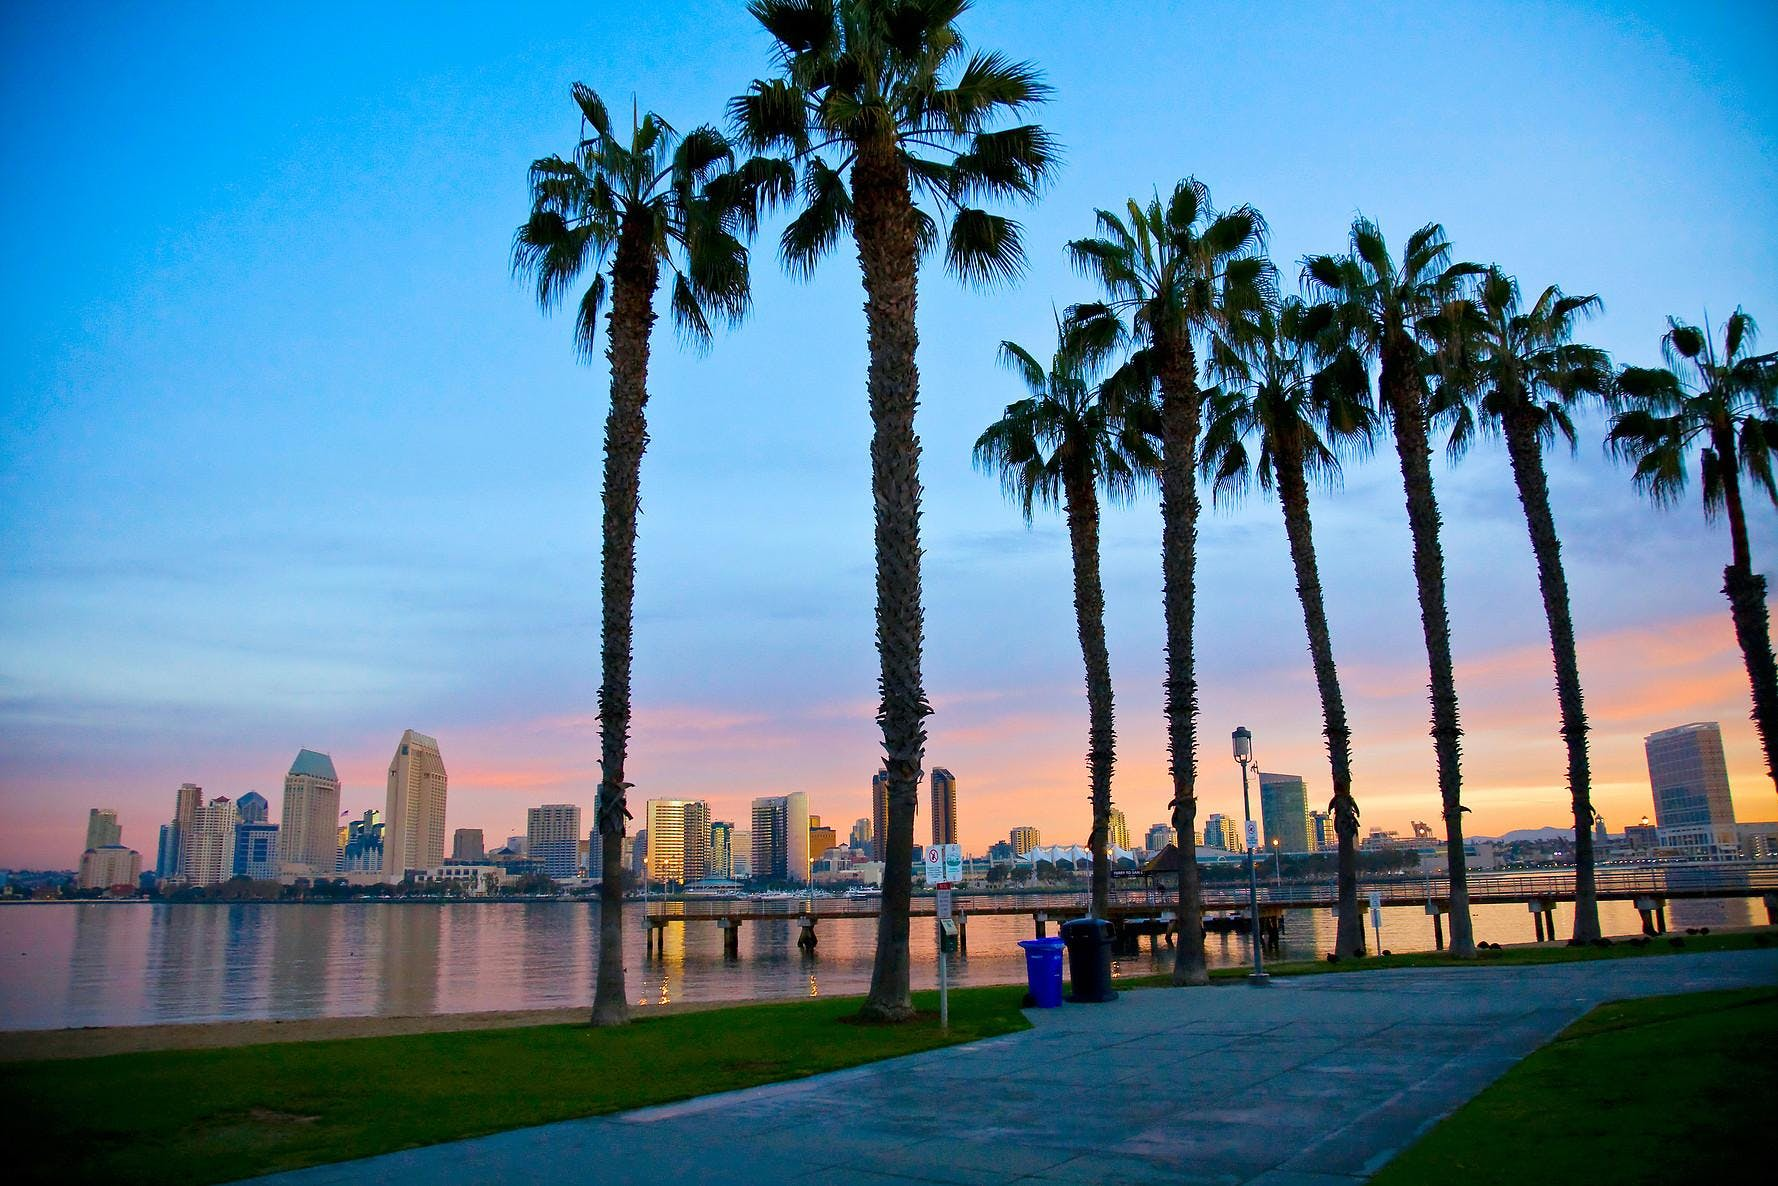 All Day San Diego City Tour + Free Shopping Tour included